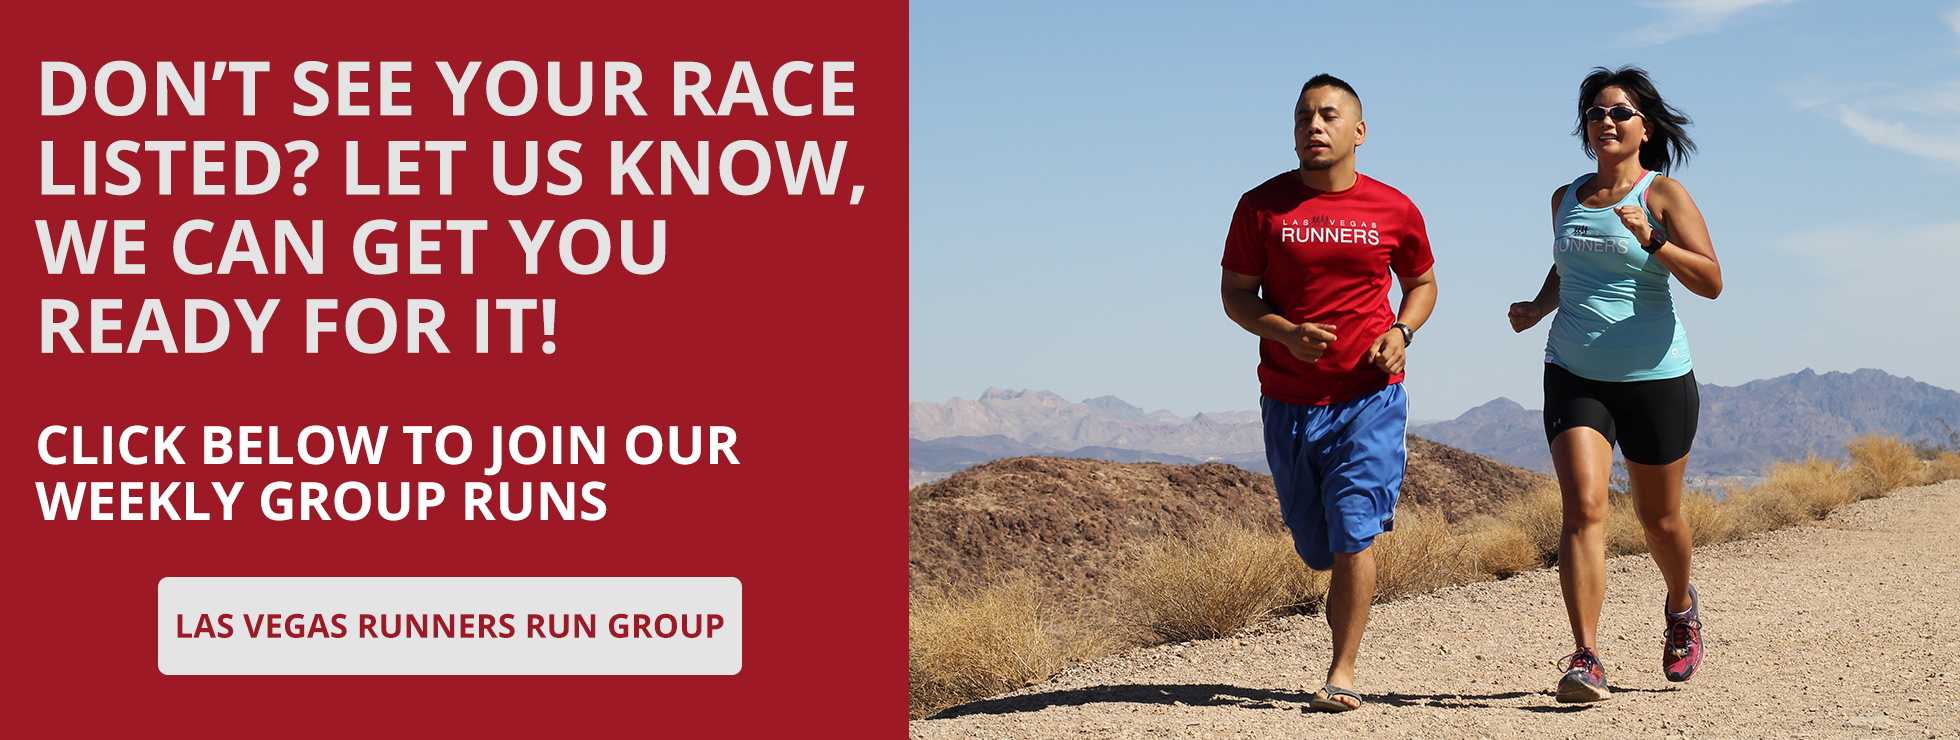 Las Vegas Runners Groups Runs & Races